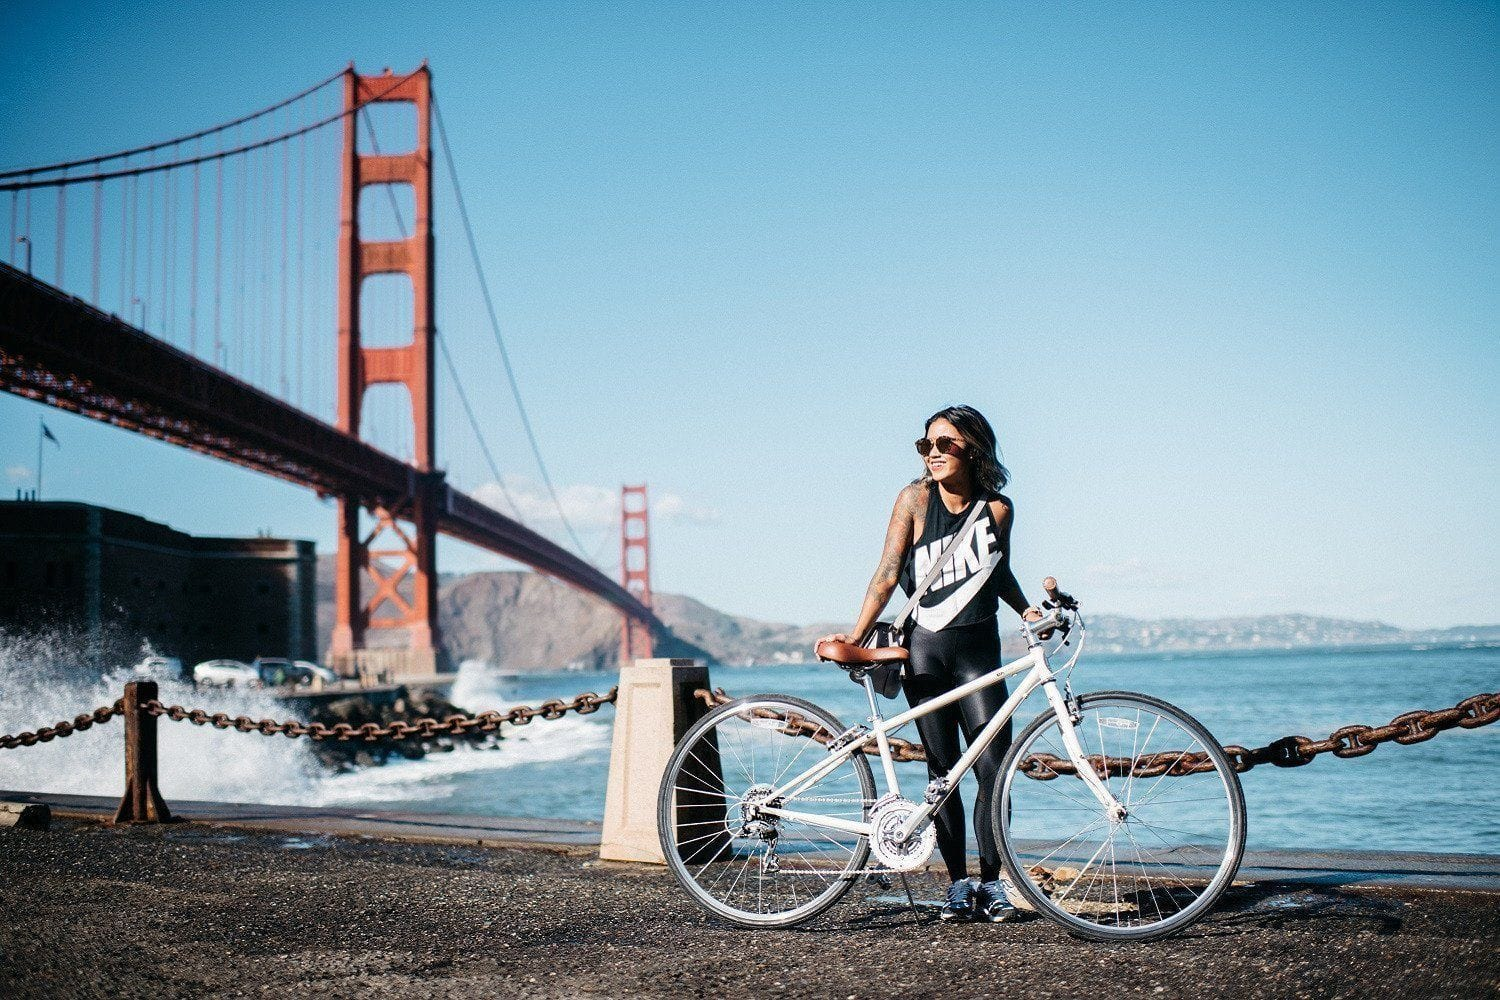 City Bicycle Tour: 11 Spots to Explore in San Fran